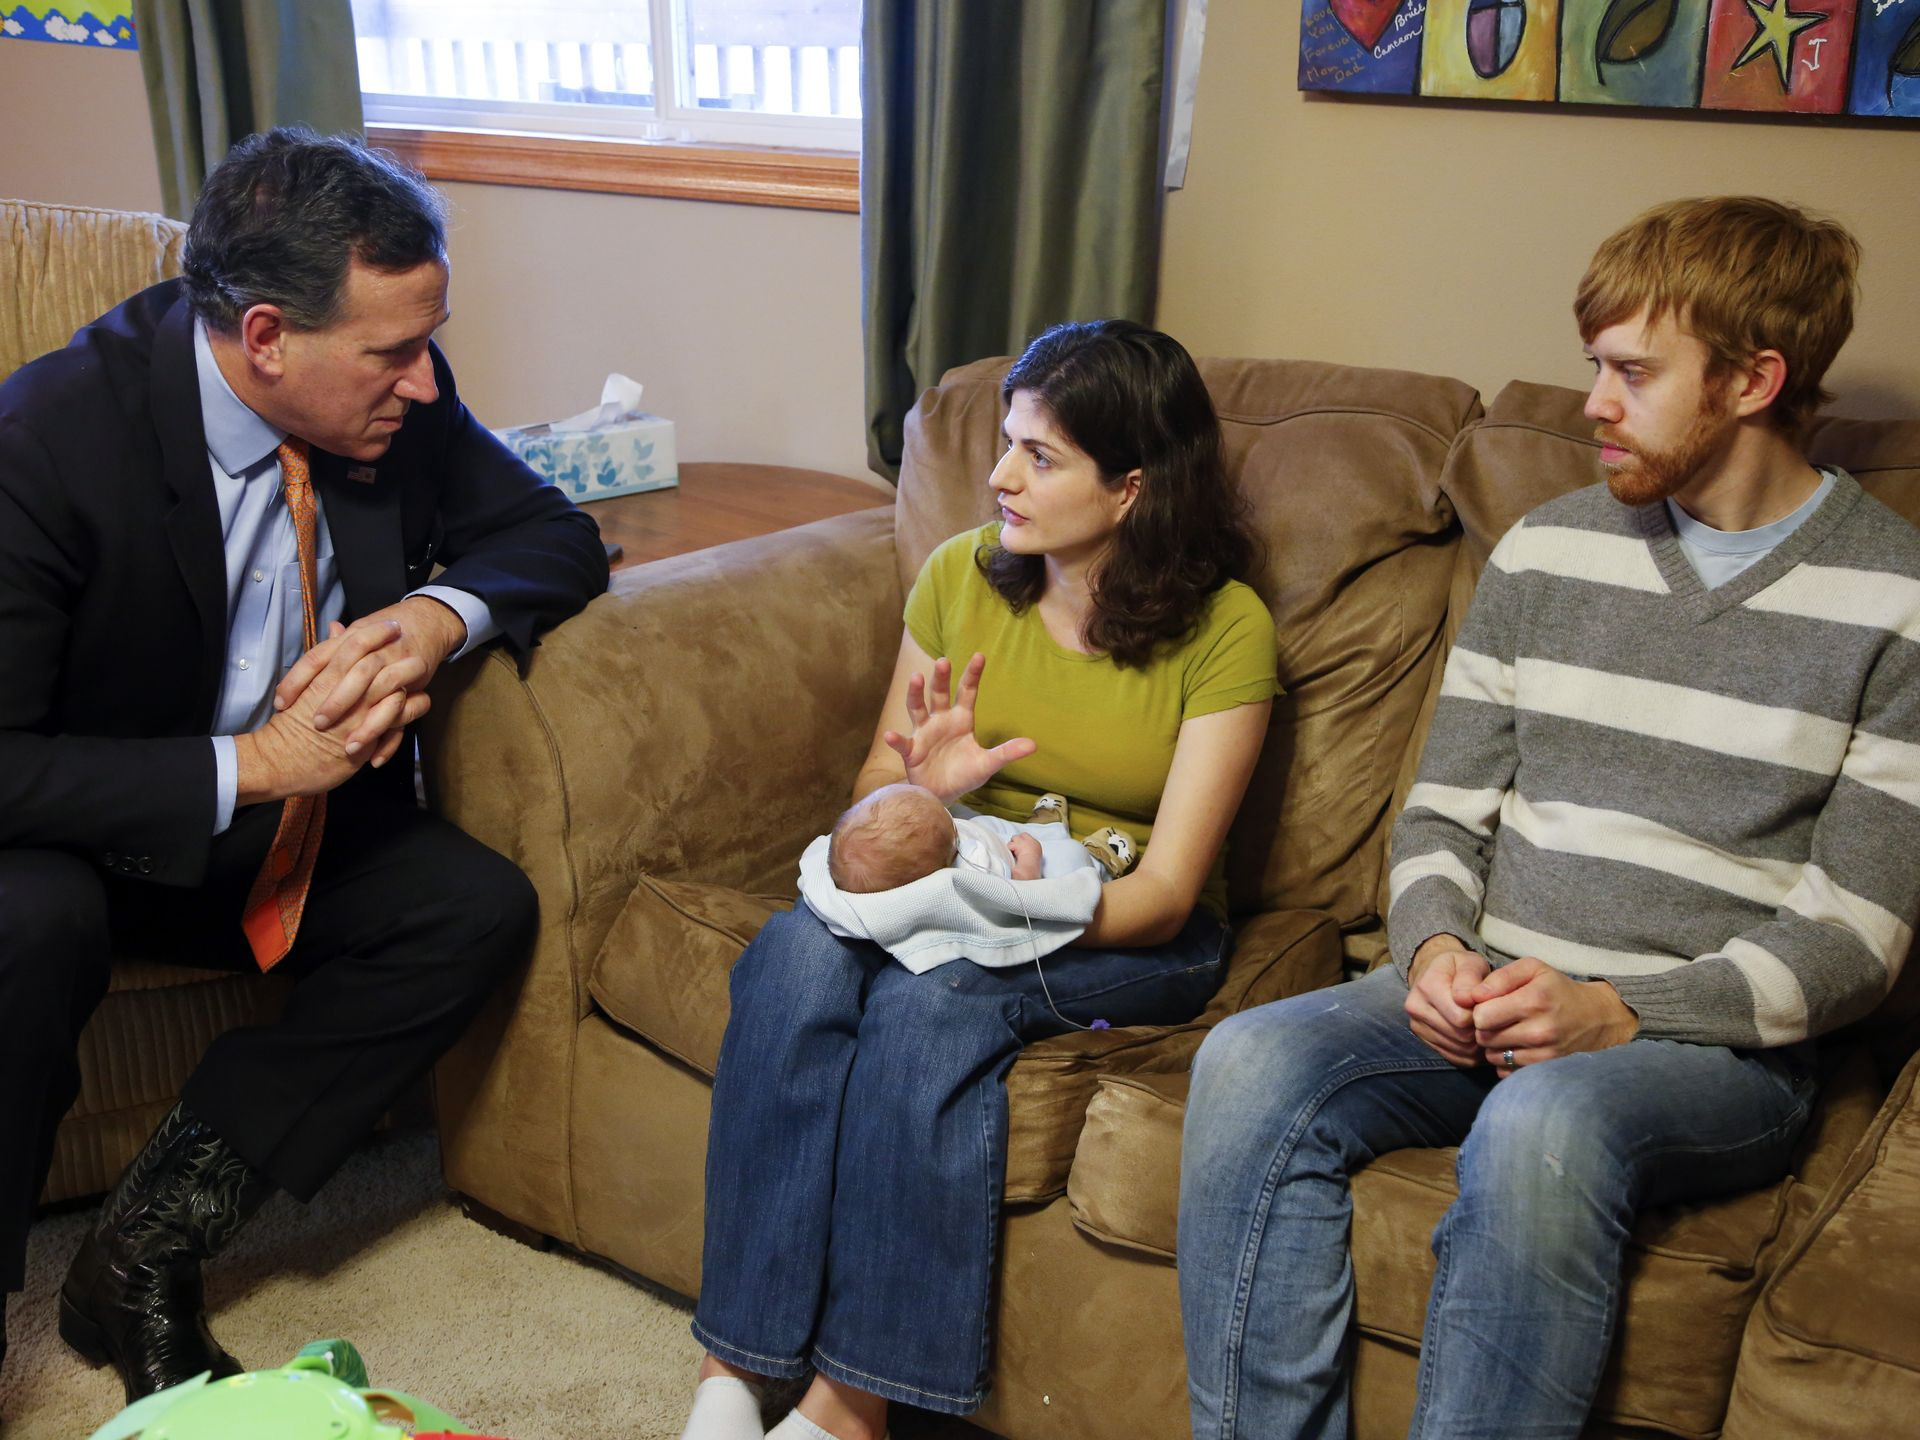 Republican presidential candidate Rick Santorum speaks with Katie and Ryan Buck at their home in rural Cumming, Iowa Thursday, Jan. 7, 2016. Their newborn baby Alex Buck, has Trisomy 18, a genetic disorder that Santorum's daughter Bella also has. Zach Boyden-Holmes/The Register